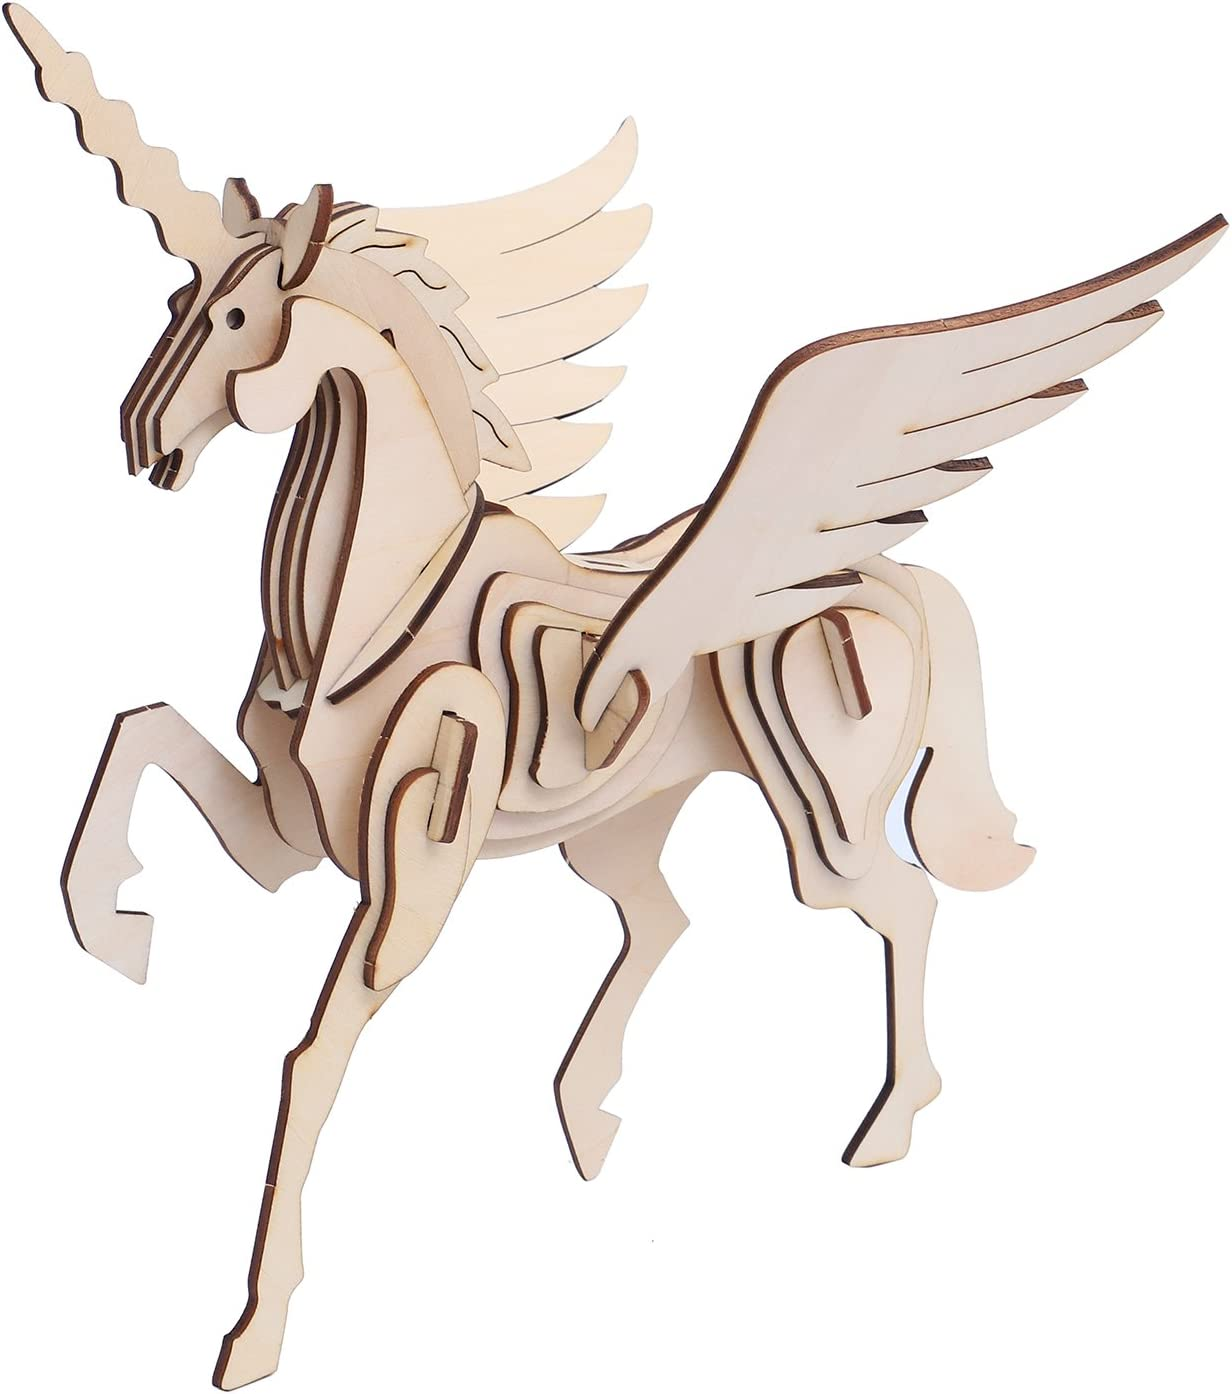 vigeiya unicorn puzzle 3d wooden jigsaw puzzle battle steed kids coloring toys adults collection decoration